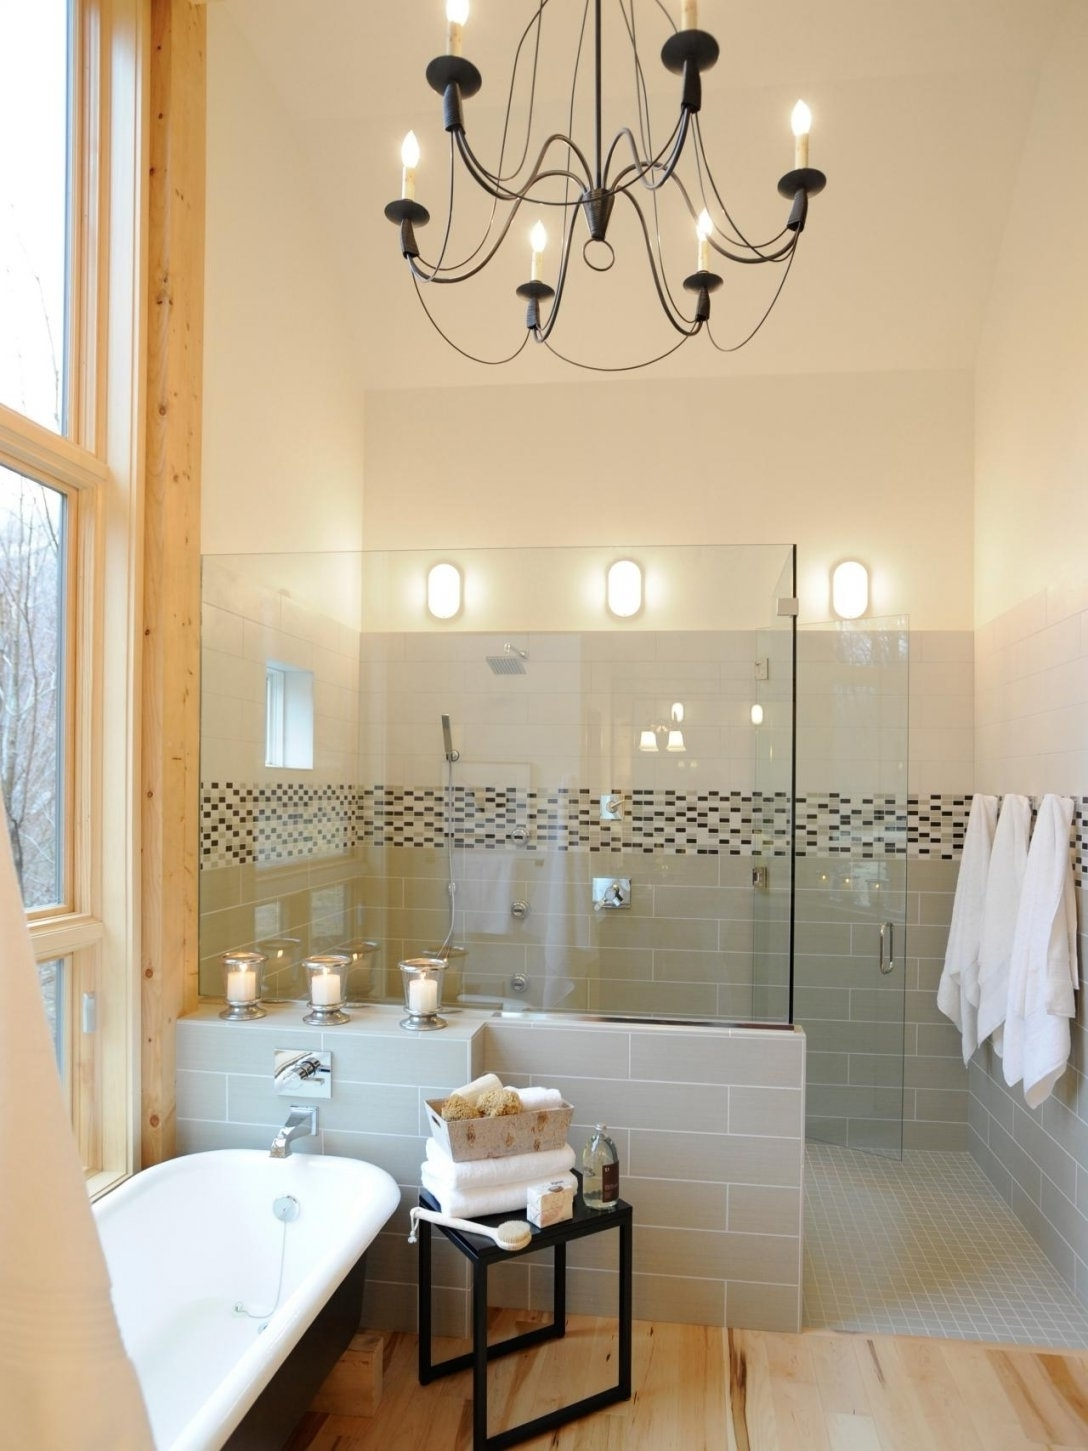 Bathroom Chandeliers Within Current Modern Bathroom Chandeliers Ideas : Top Bathroom – Elegance And (View 5 of 15)